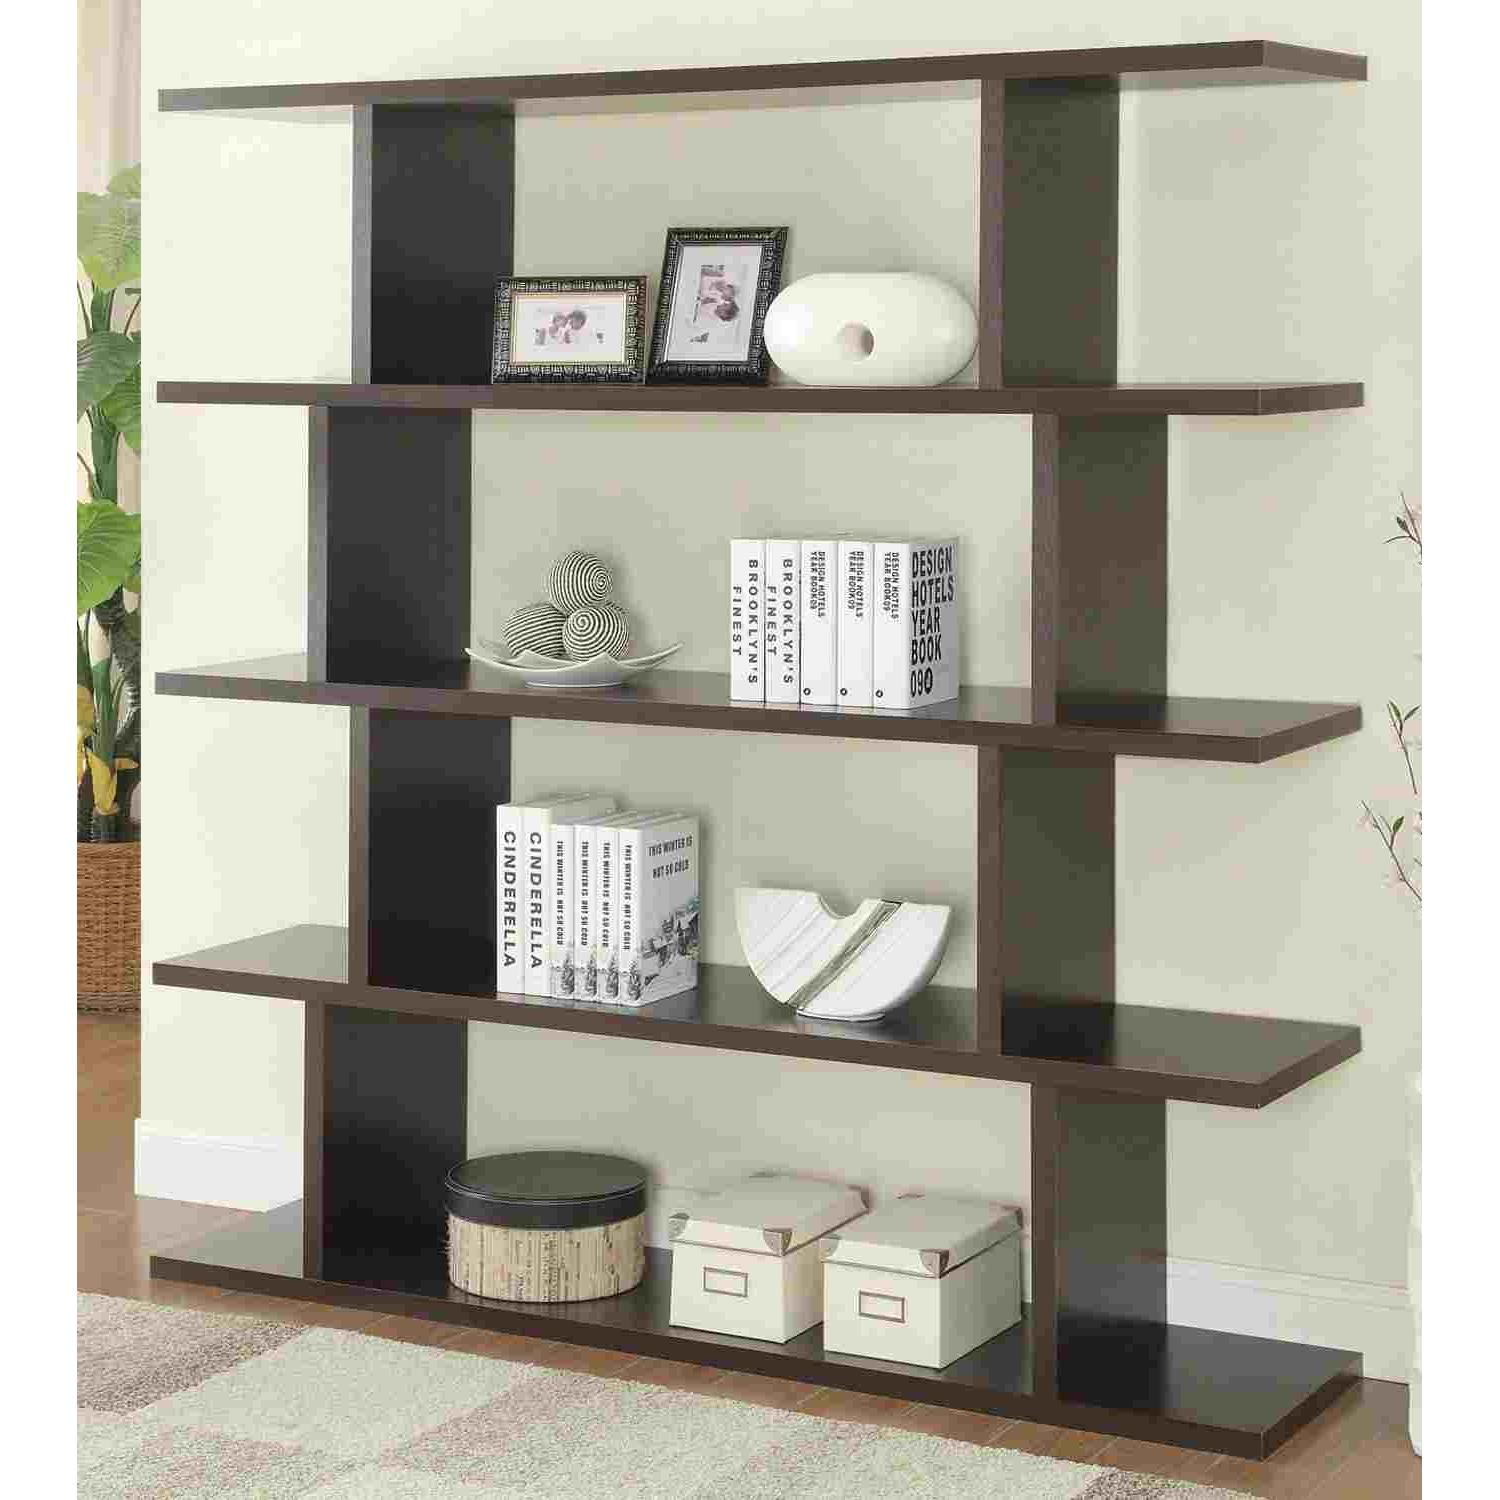 Book/Display Shelf in Cappuccino Finish - image-1